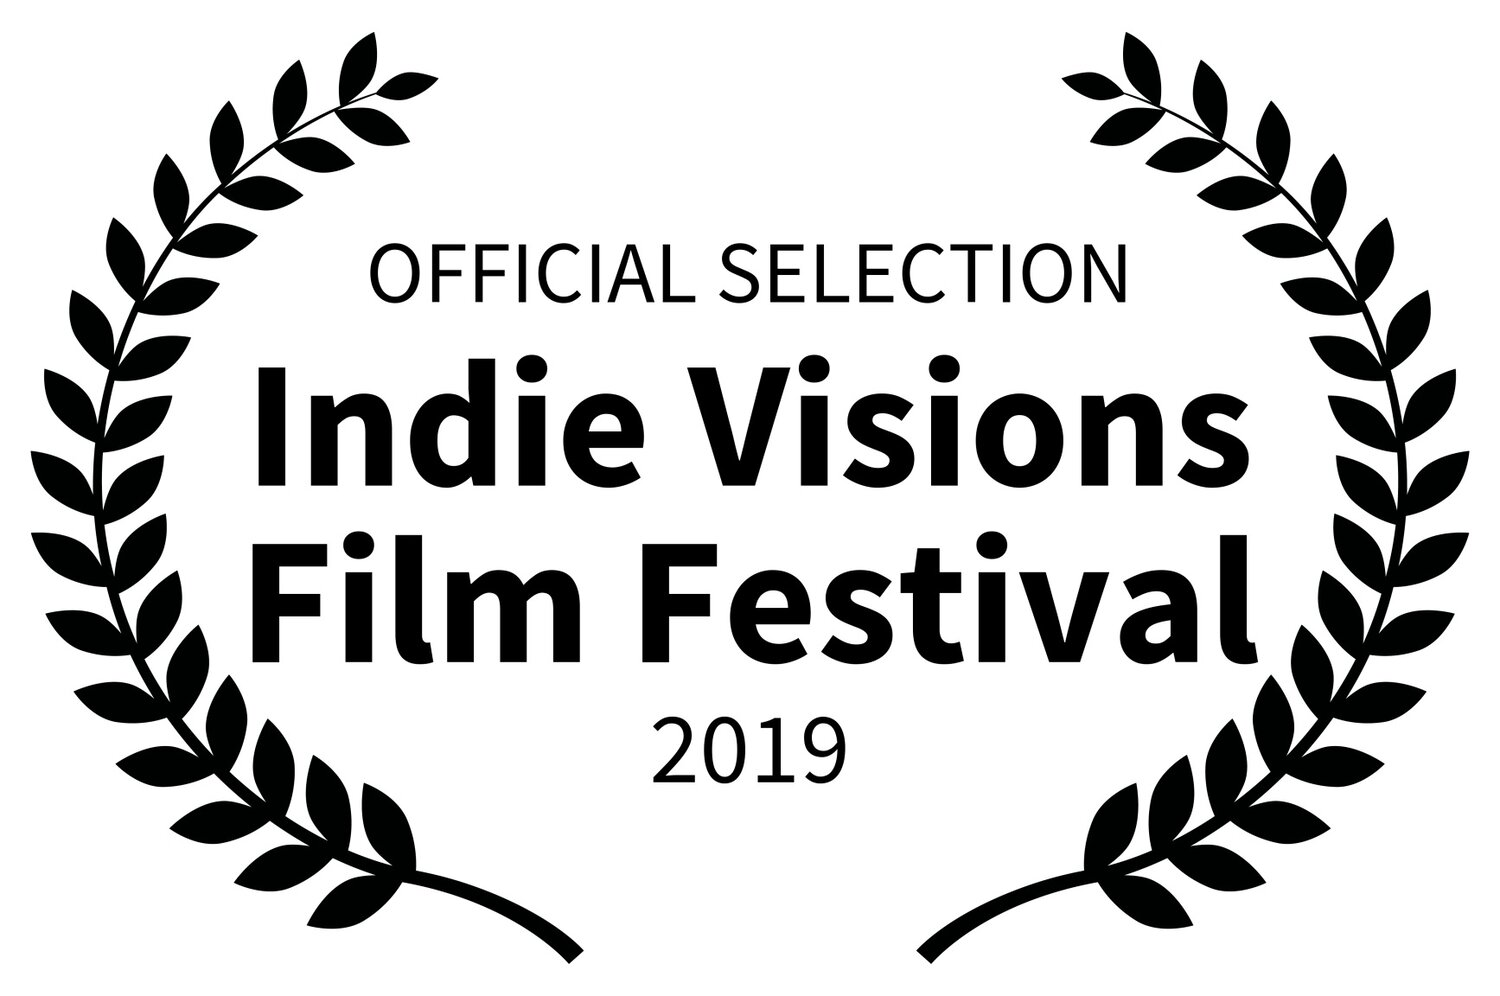 OFFICIAL+SELECTION+-+Indie+Visions+Film+Festival+-+2019.jpg